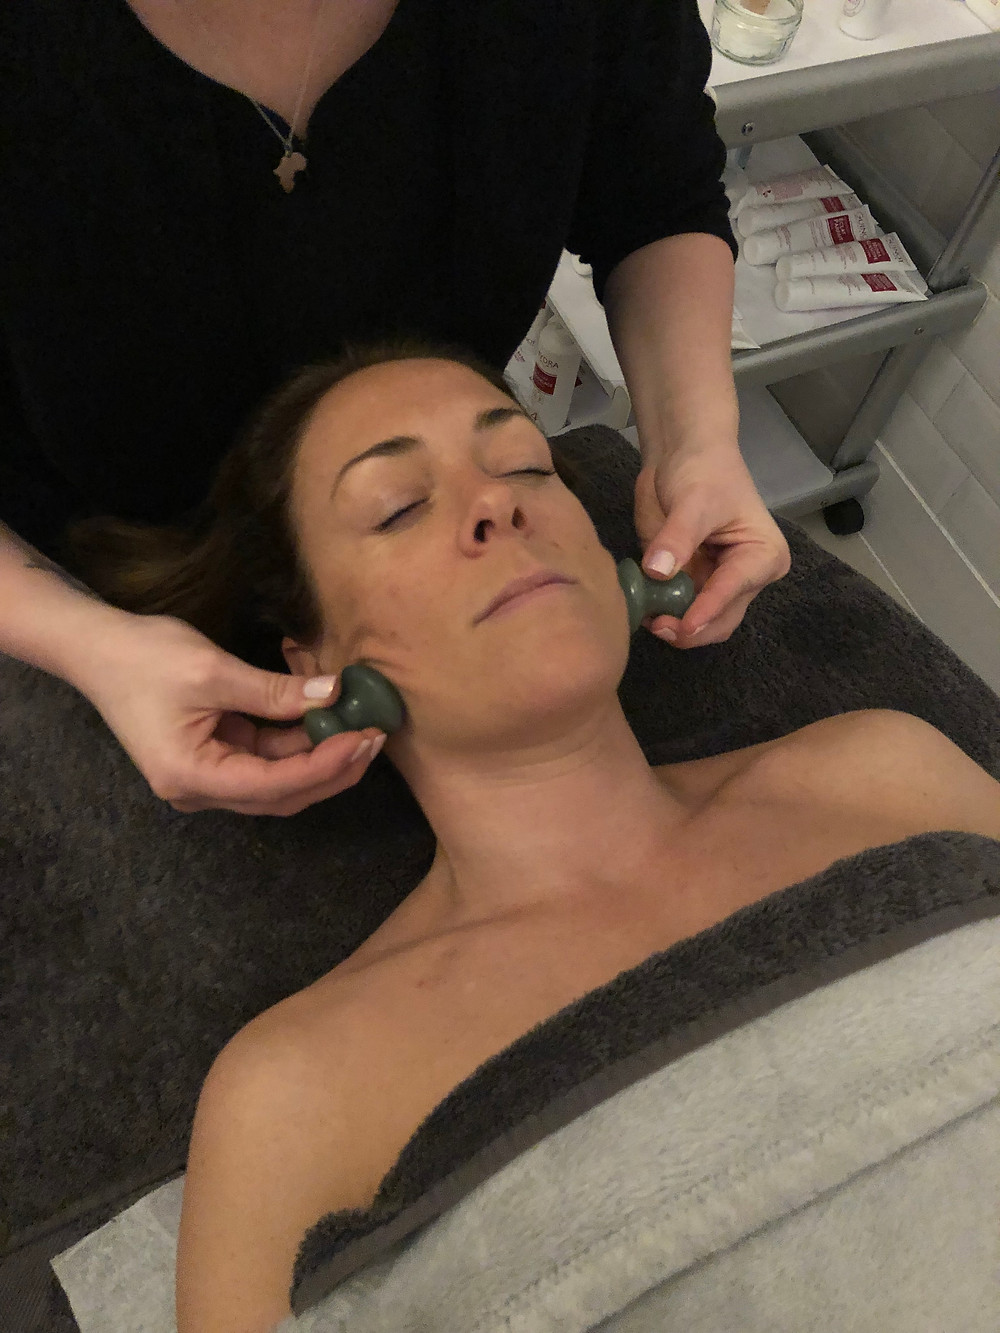 Jade Gua Sha Stones during a Rosalena FaceFit Treatment at All About The Girl